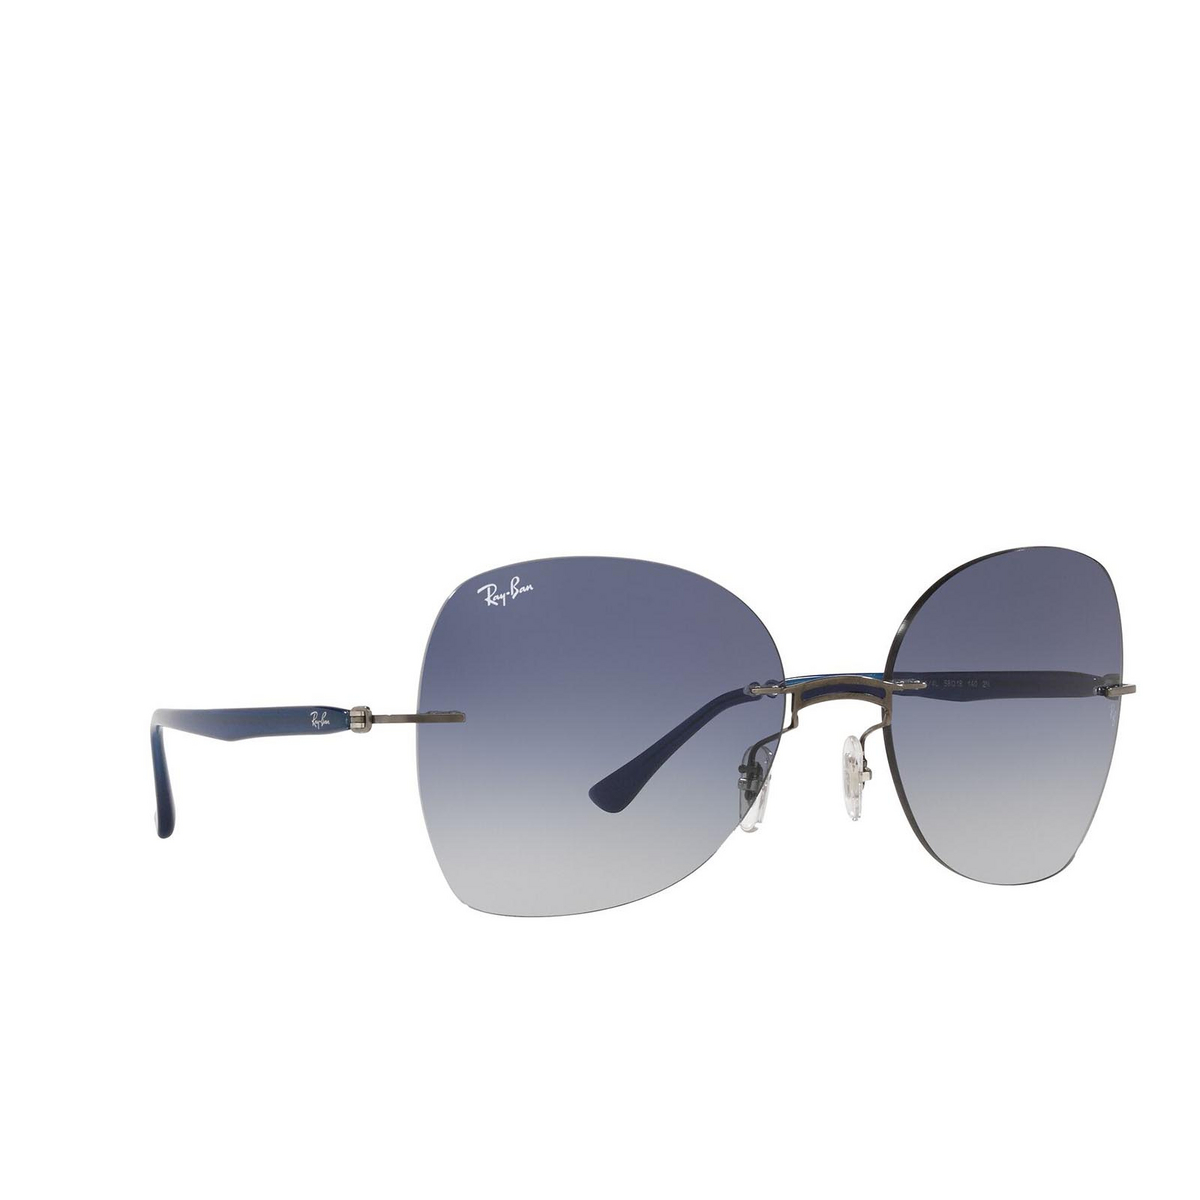 ray-ban-rb8066-004-4l (1)